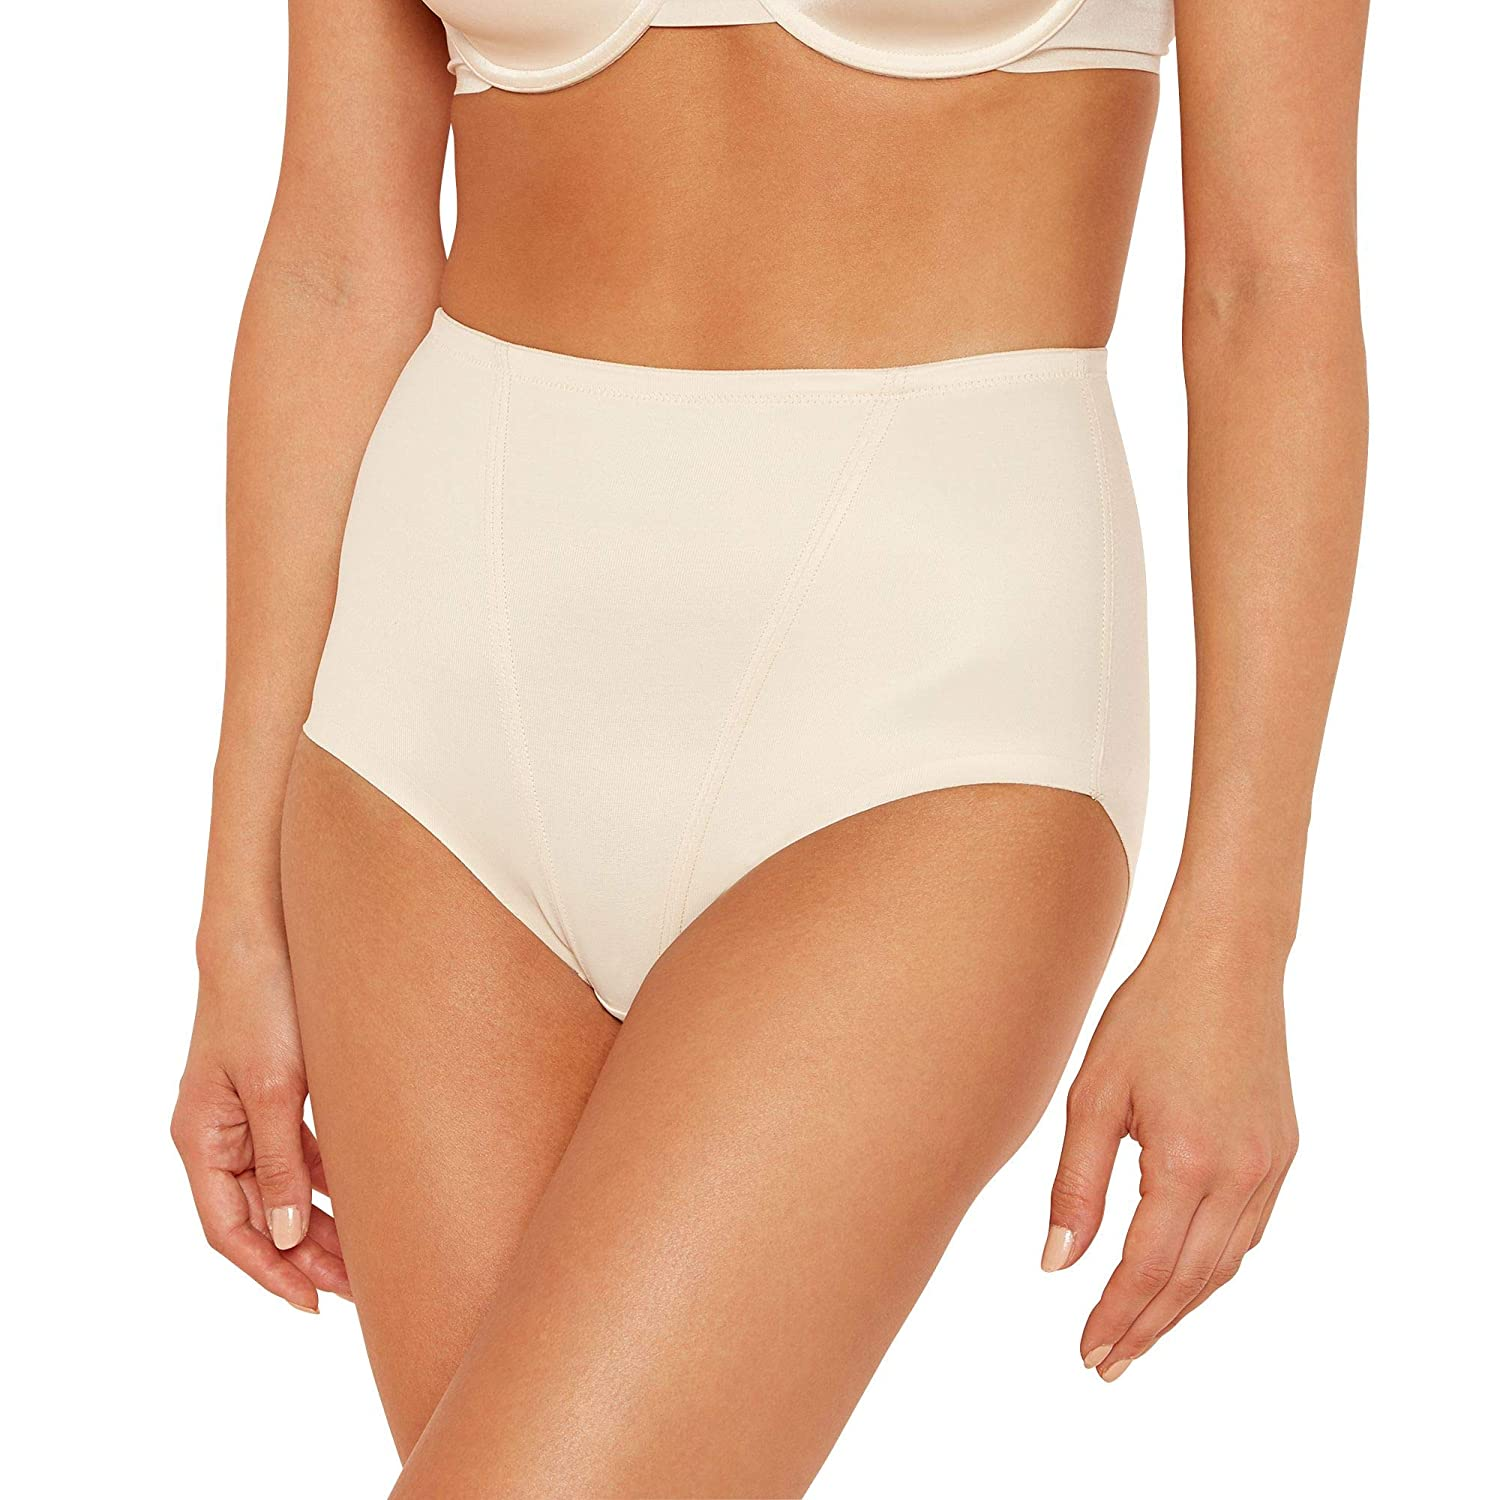 Debenhams The Collection Womens Nude Firm Control Low Leg Shaping Briefs